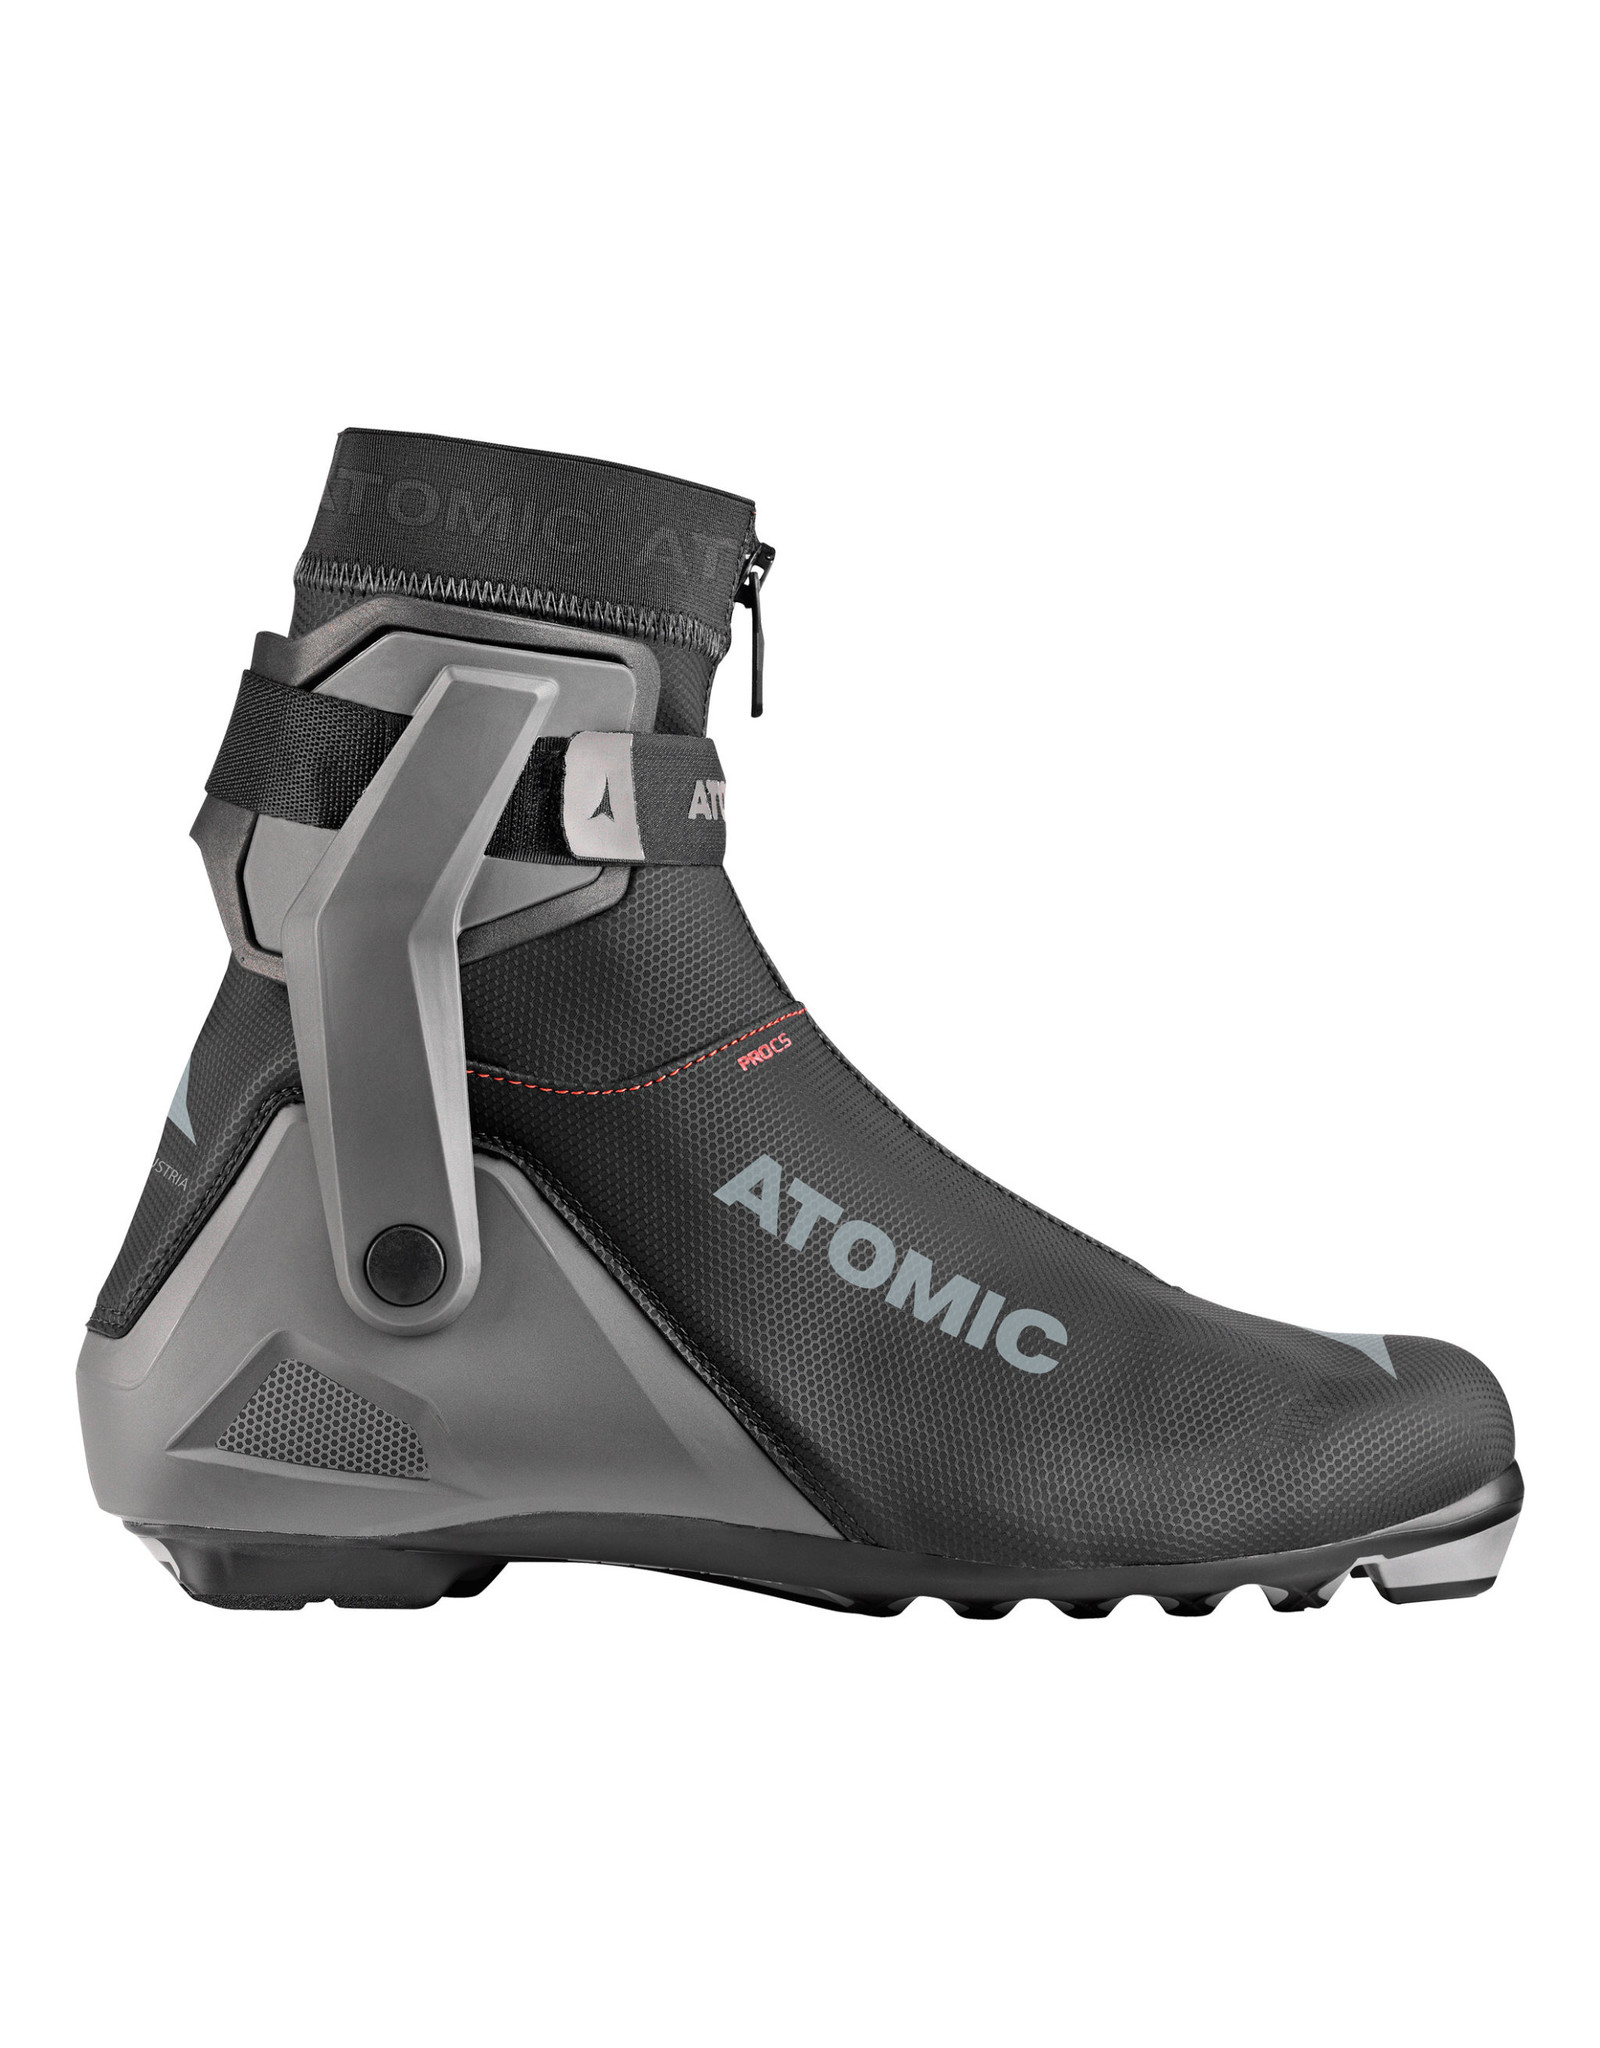 Atomic Atomic Pro CS Combi Boot